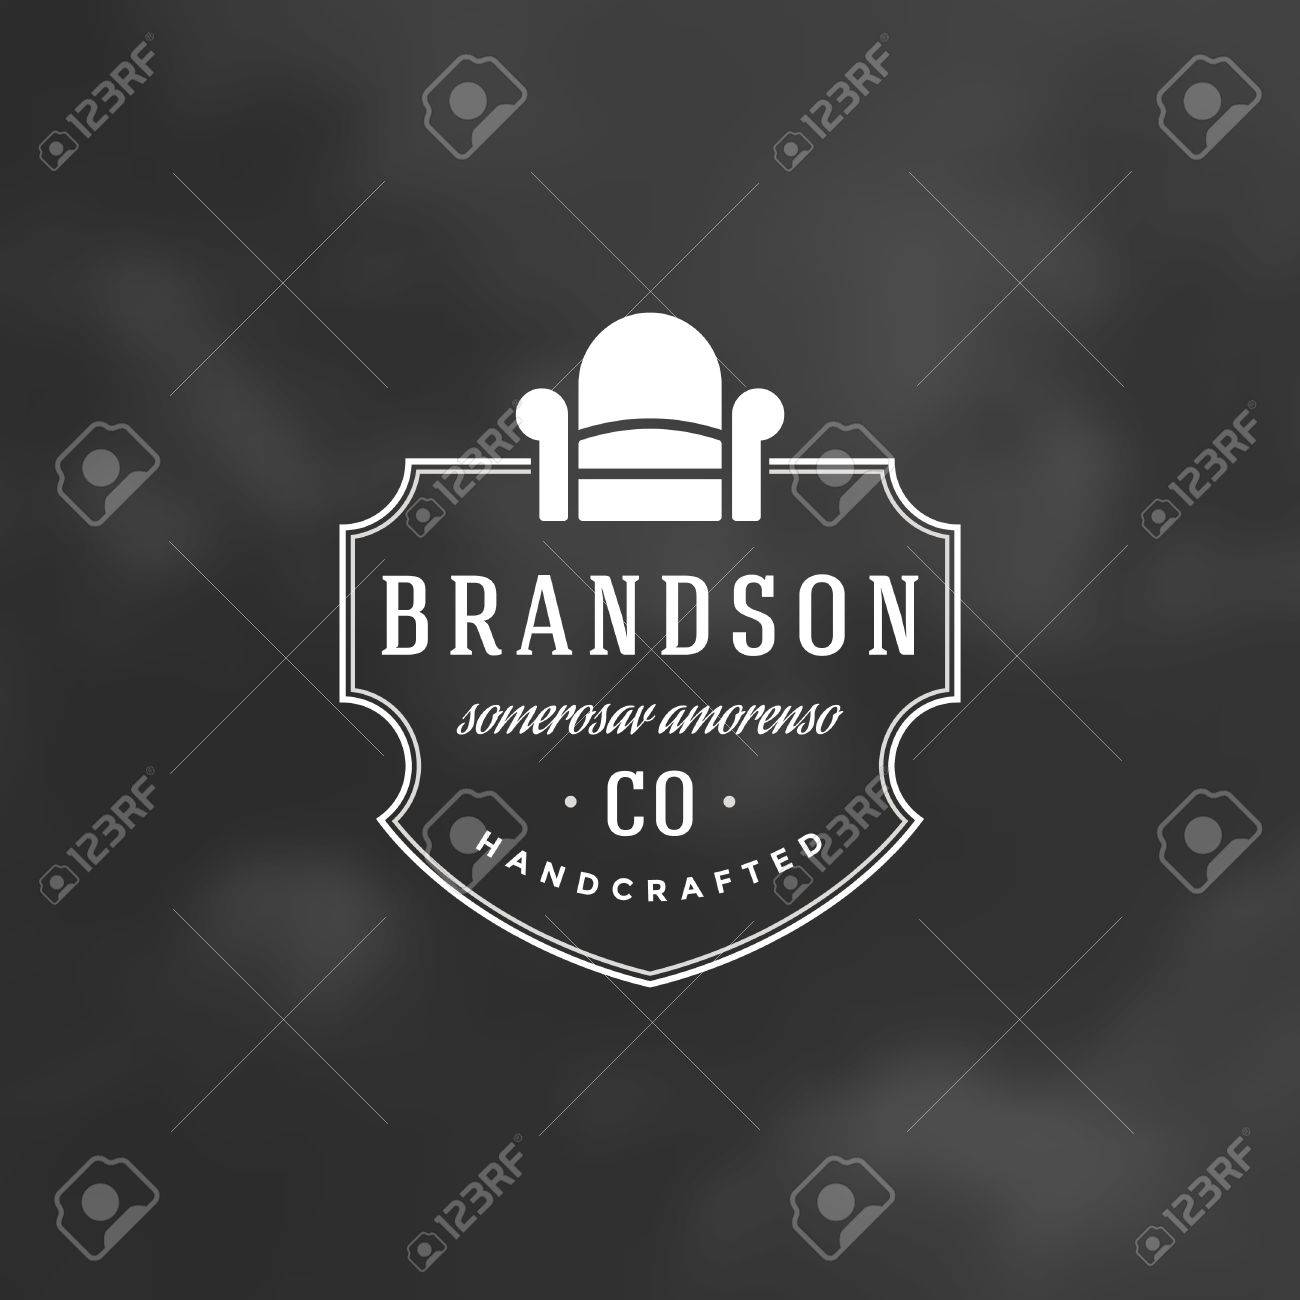 Armchair Furniture Logo Template. Vector Design Element Vintage Style for Logotype or Label Retro illustration. Armchair Silhouette. - 56522197